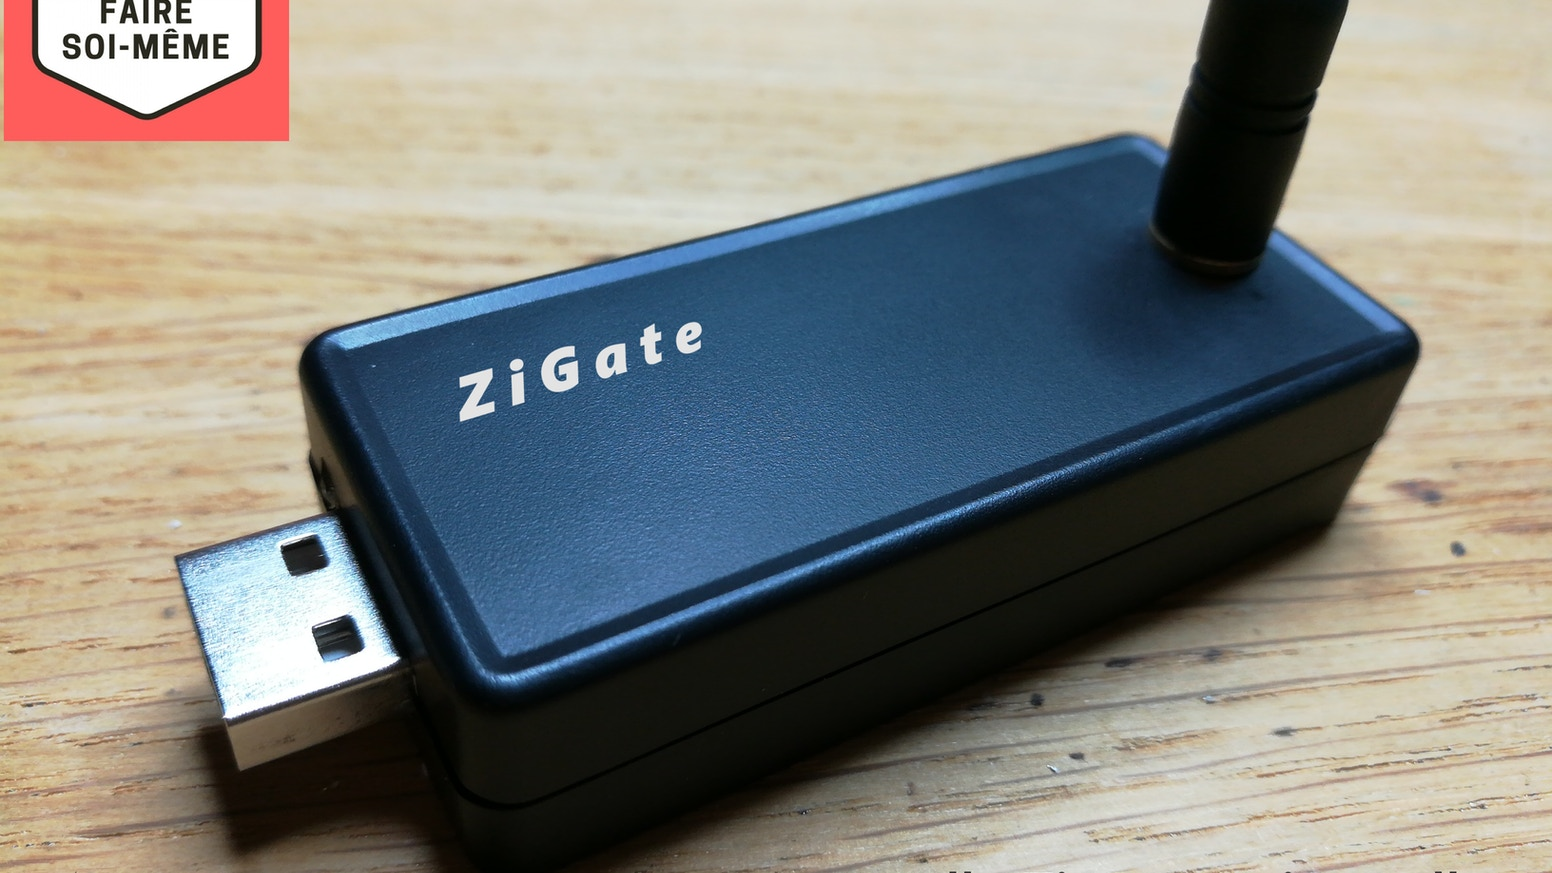 zigate universal zigbee gateway for smarthome by. Black Bedroom Furniture Sets. Home Design Ideas